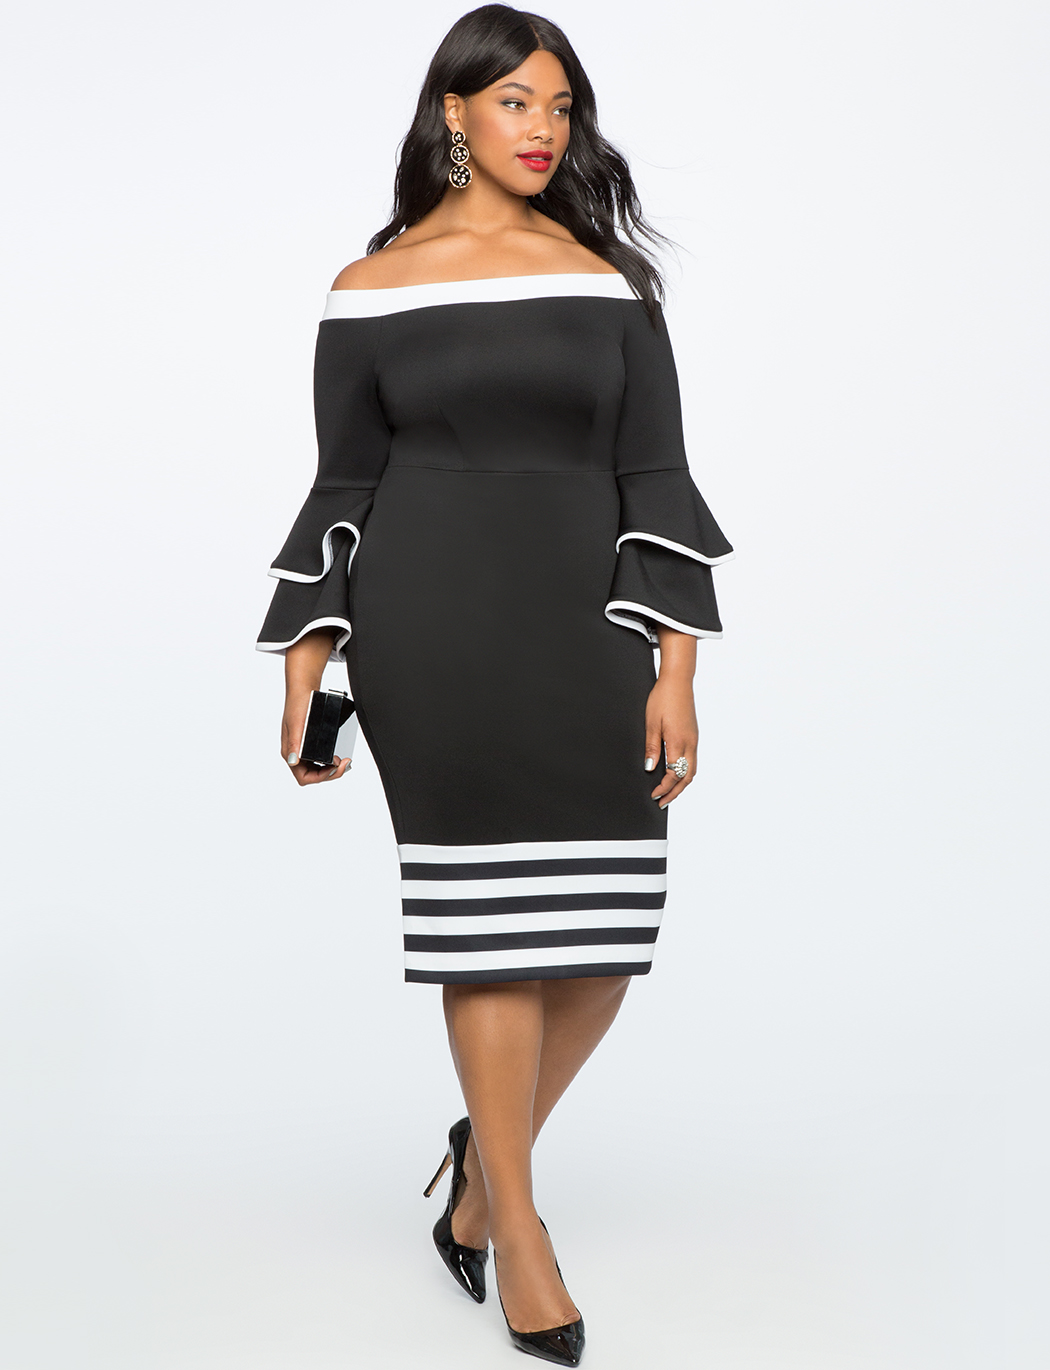 Colorblock Flare Sleeve Dress Women S Plus Size Dresses